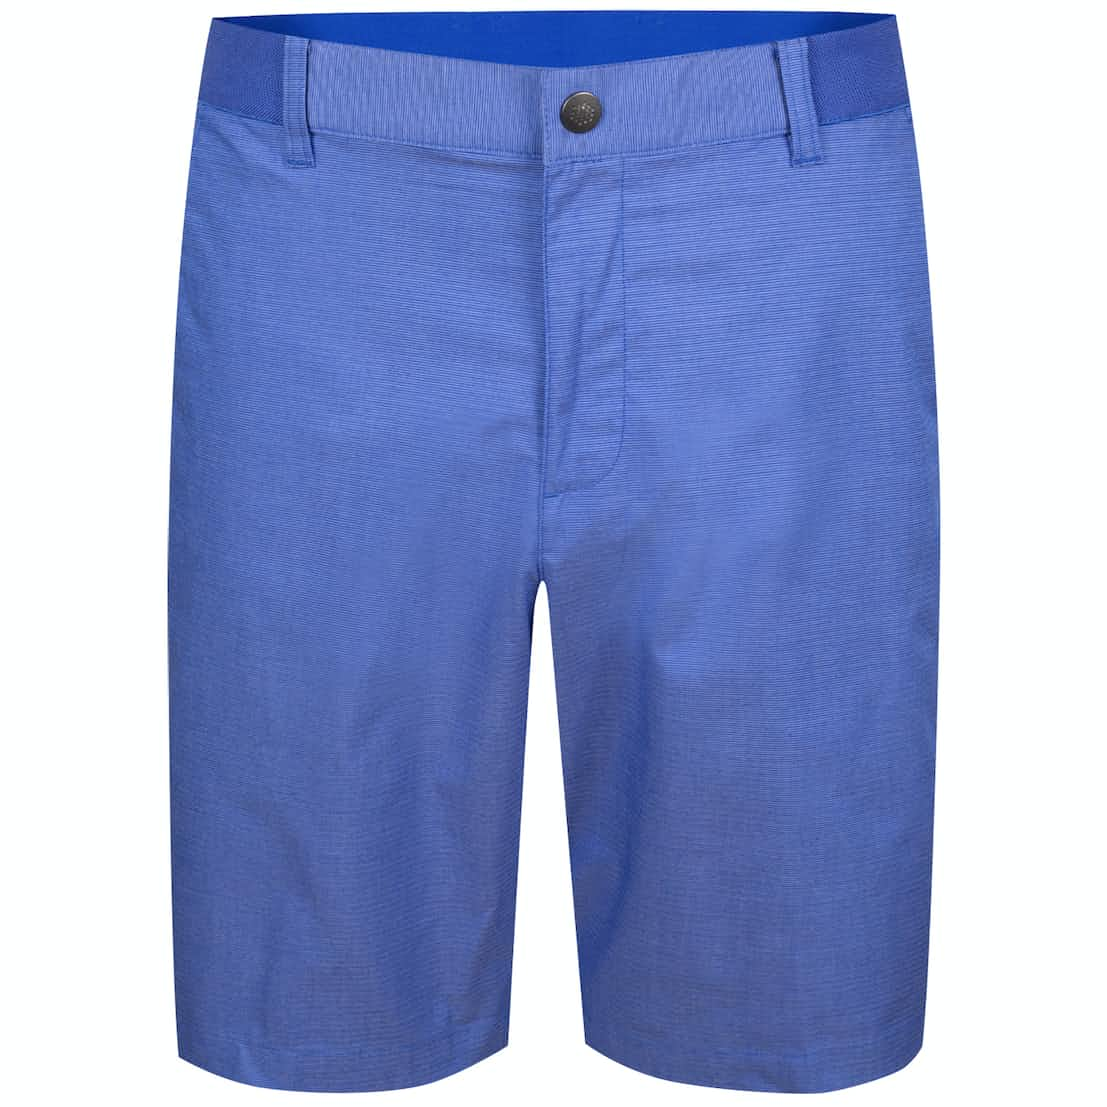 Riviera Shorts Dazzling Blue - AW19